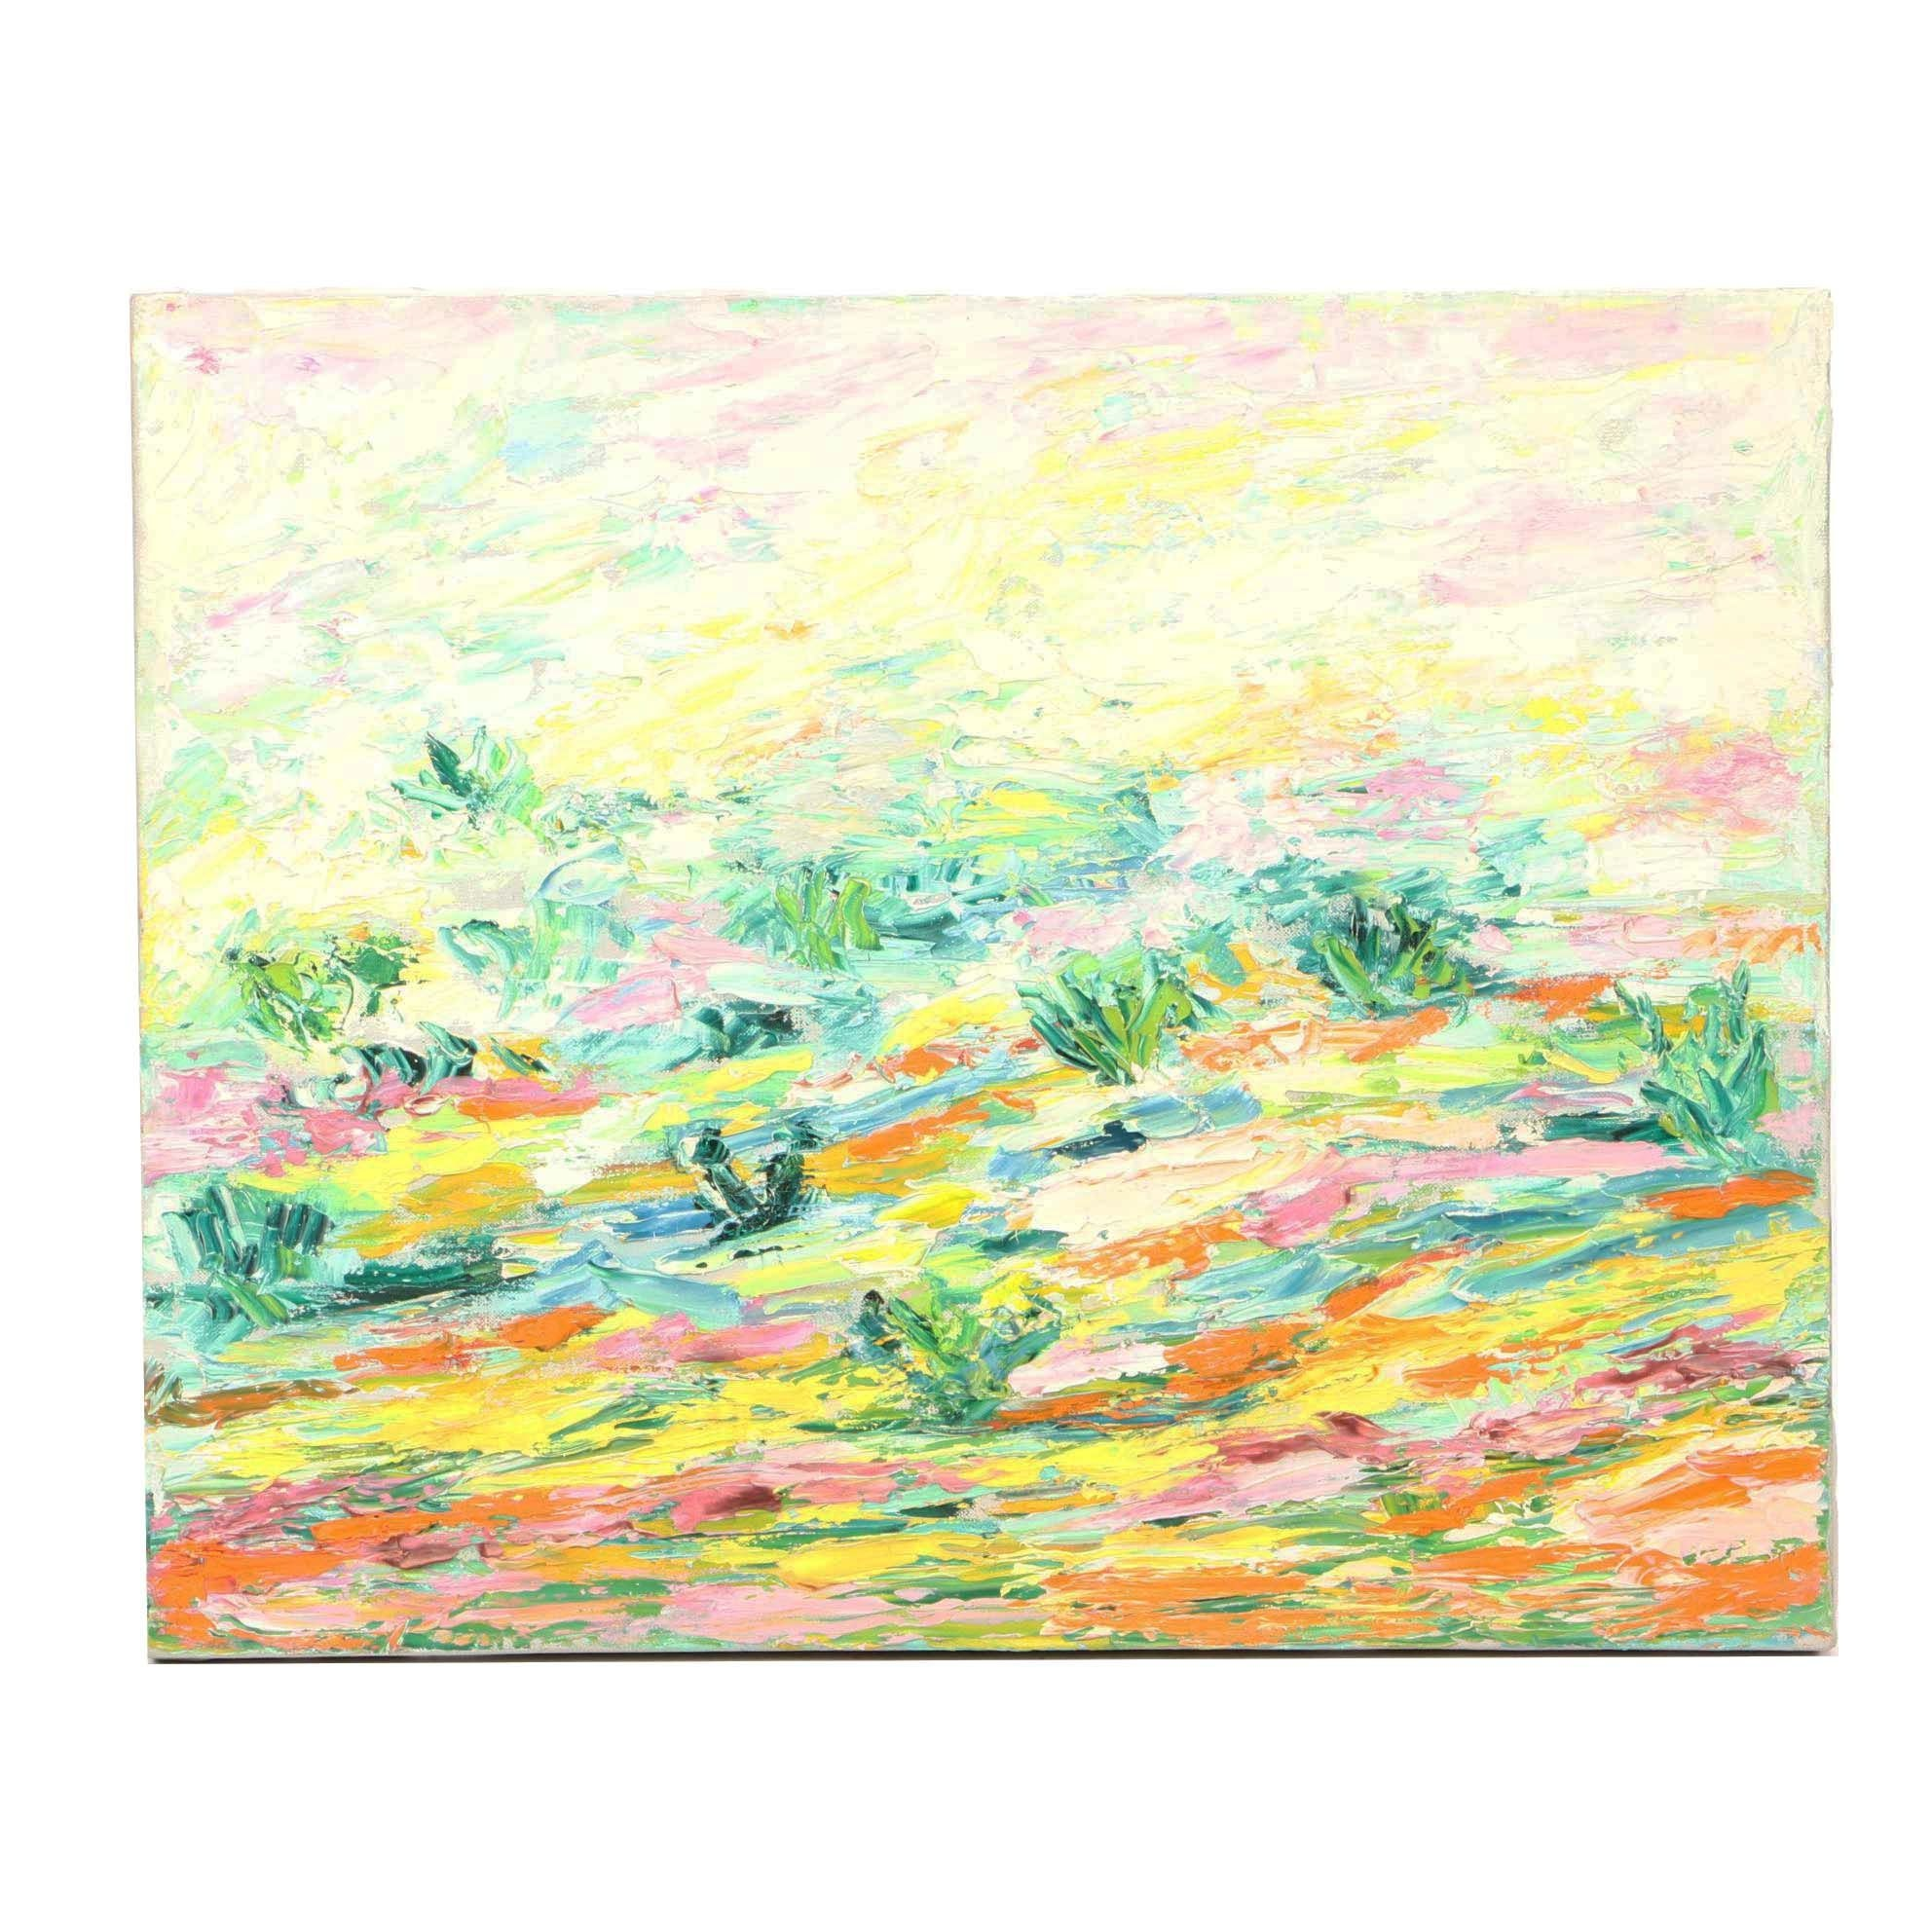 Abstract Impasto Oil Painting of Garden Landscape